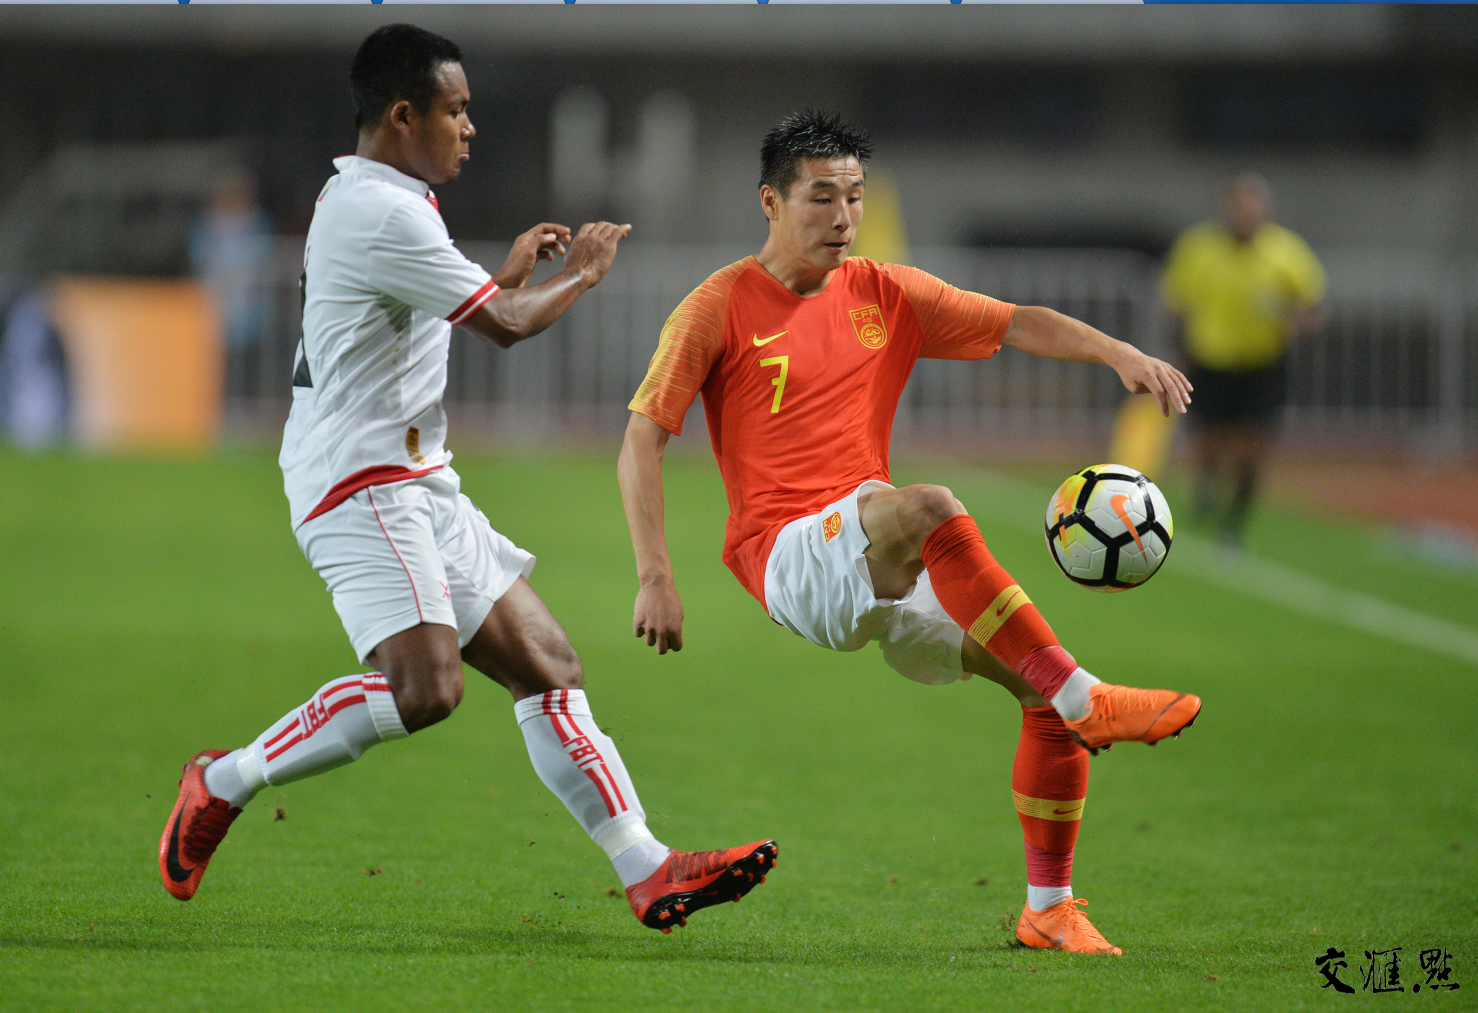 Warm-up match in the National Stadium in Nanjing Jiangning Sports Center 1 to 0 victory over Myanmar